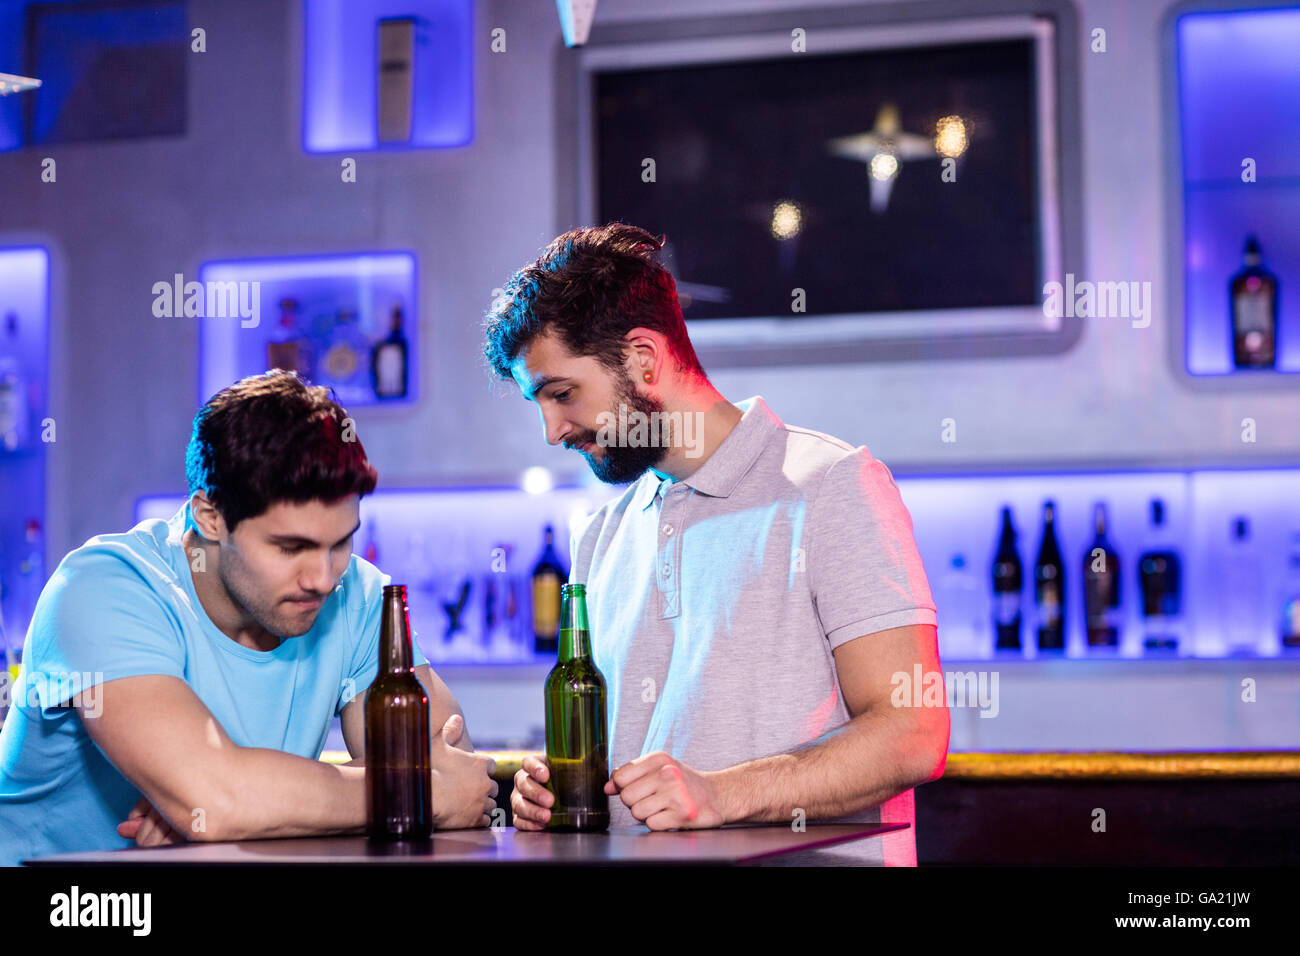 Man consoling his depressed friend - Stock Image